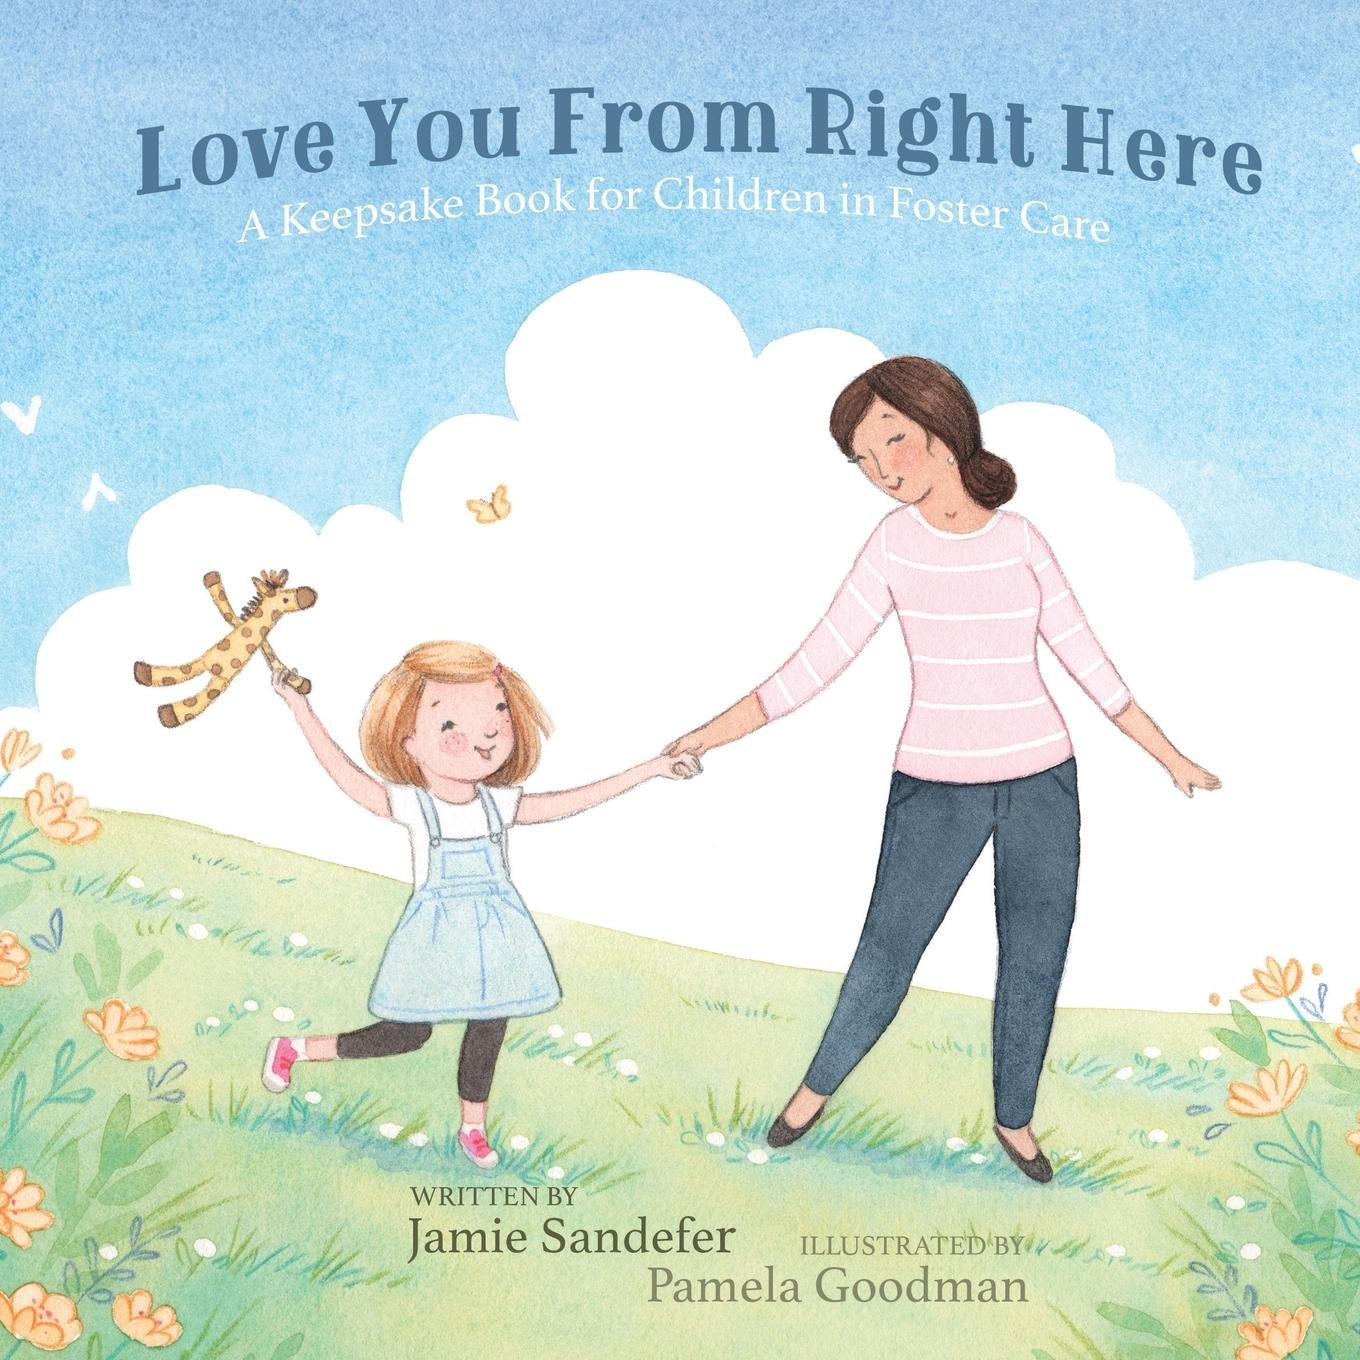 Love You From Right Here: A Keepsake Book for Children in Foster Care